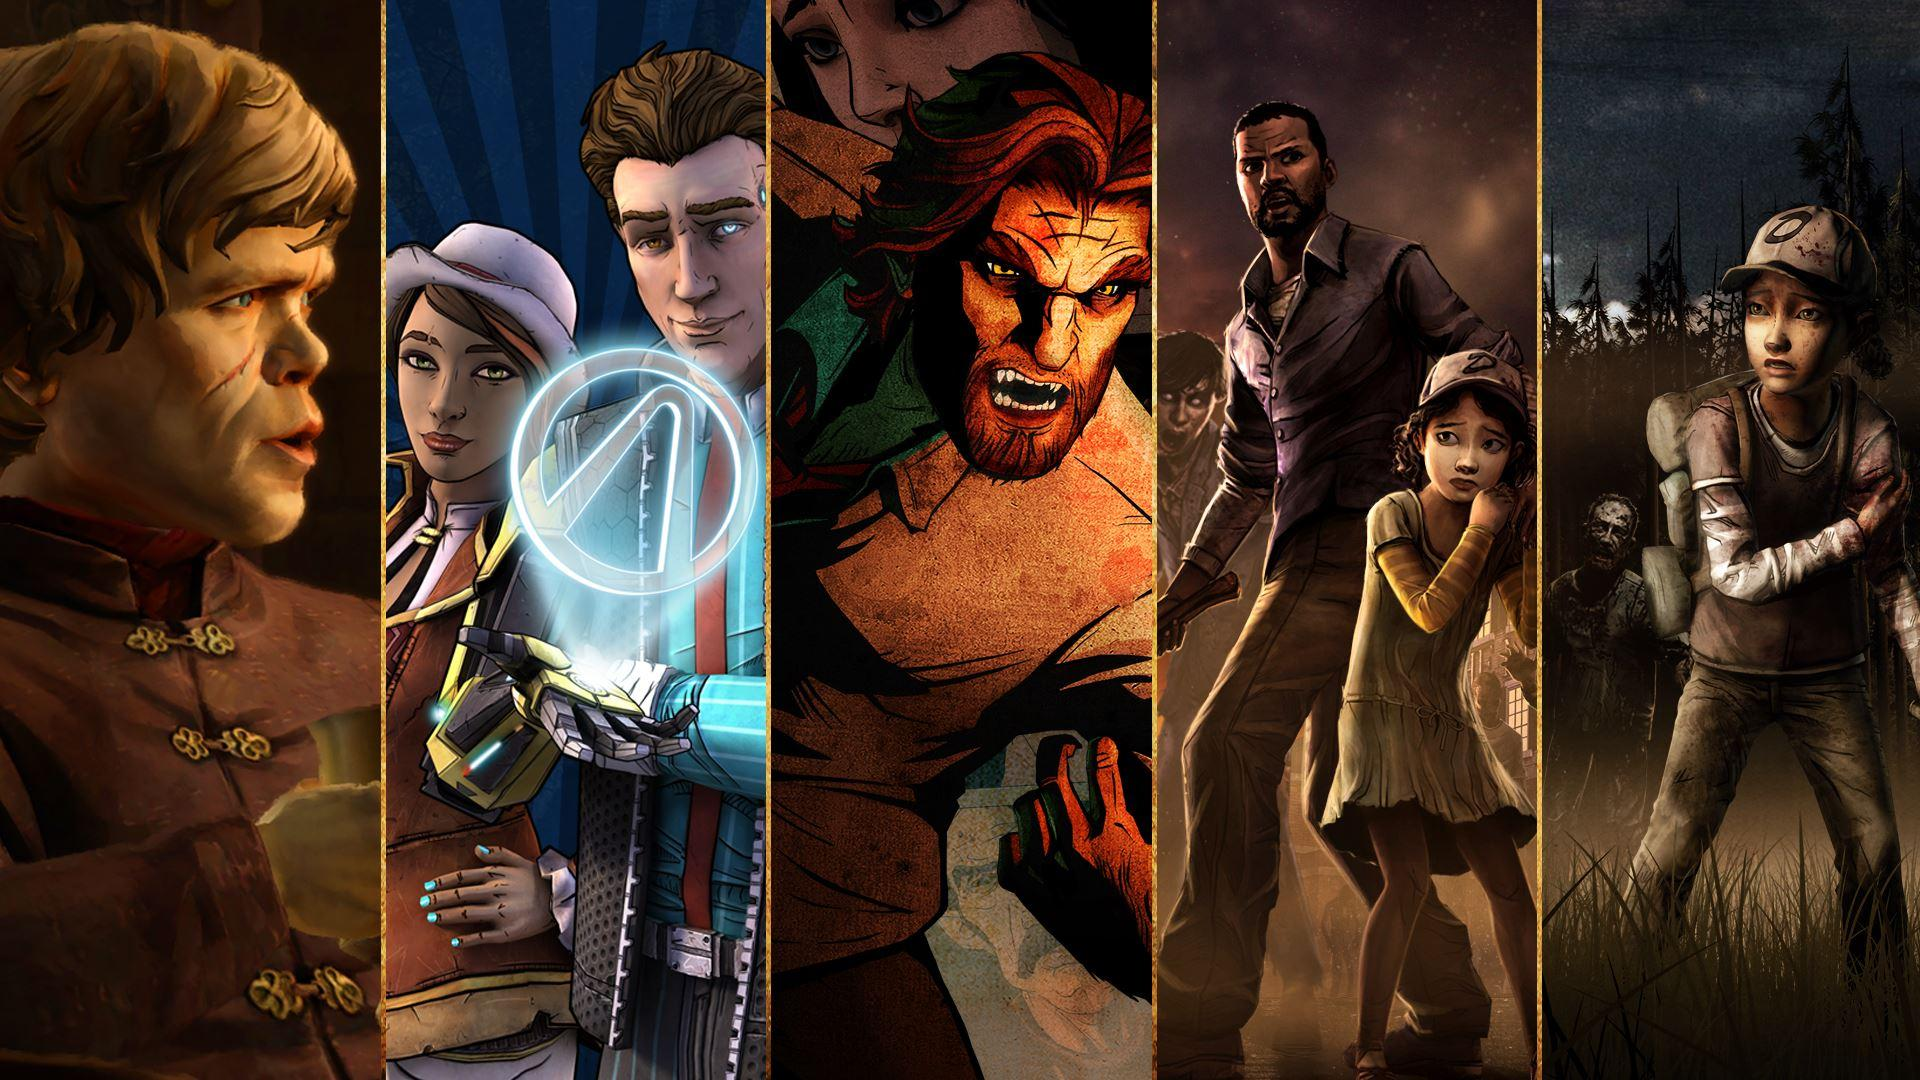 Xbox One's Telltale Game Collection Includes Game of Thrones, Walking Dead, and More